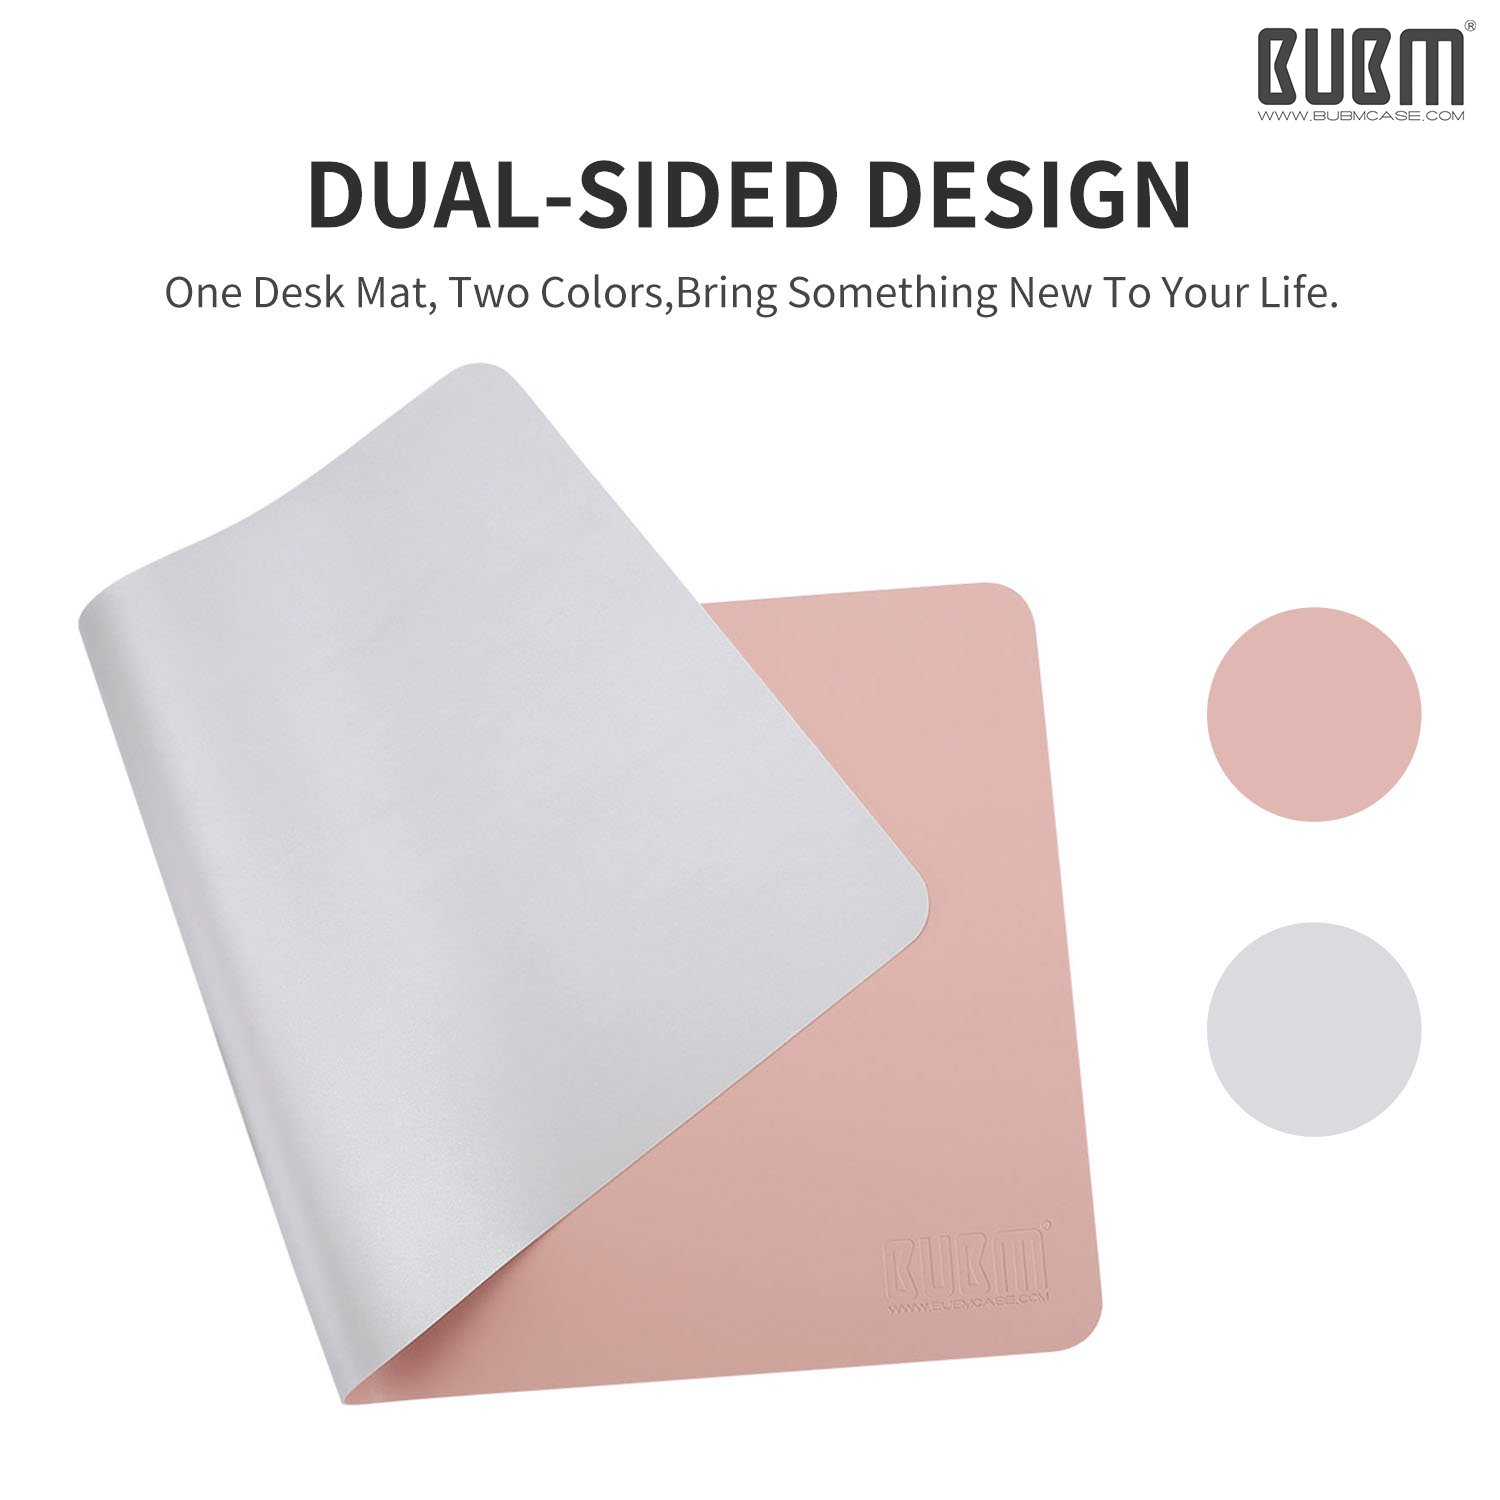 Desk Pad Mouse Pad/Mat - BUBM Large Gaming Mouse Pad Desktop Pad Protector PU Leather Laptop pad for Office and Home,Waterproof and Smooth,2 Year Warranty(35.4'' 17.7'', Pink+Silver) by BUBM (Image #2)